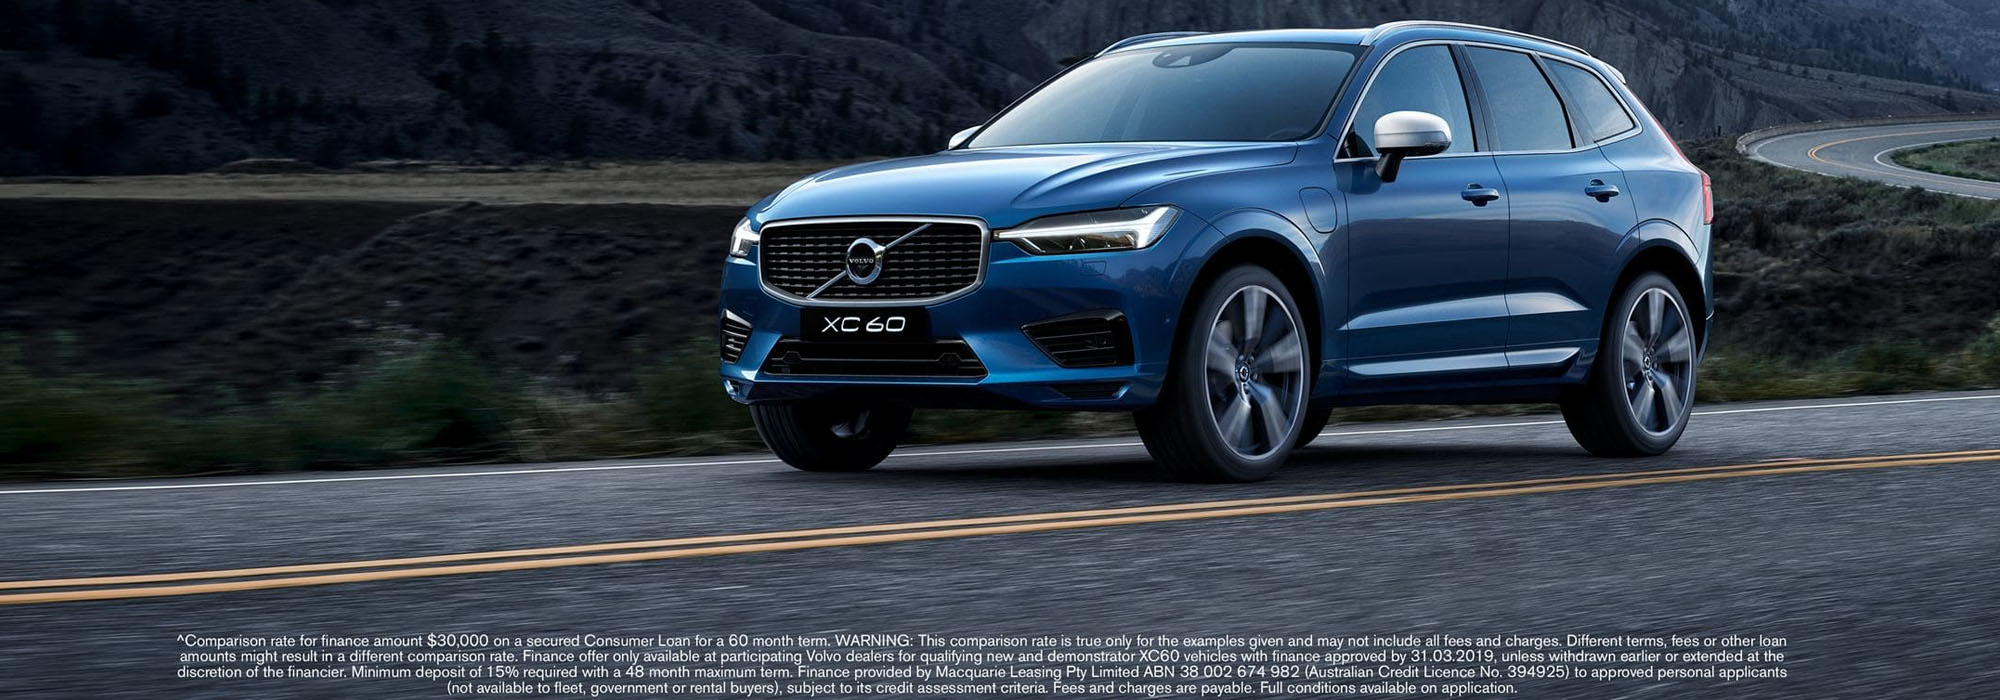 XC60 with 1.9% p.a. comparison rate^ finance. Minimum 15% deposit required. Offer must end March 31.